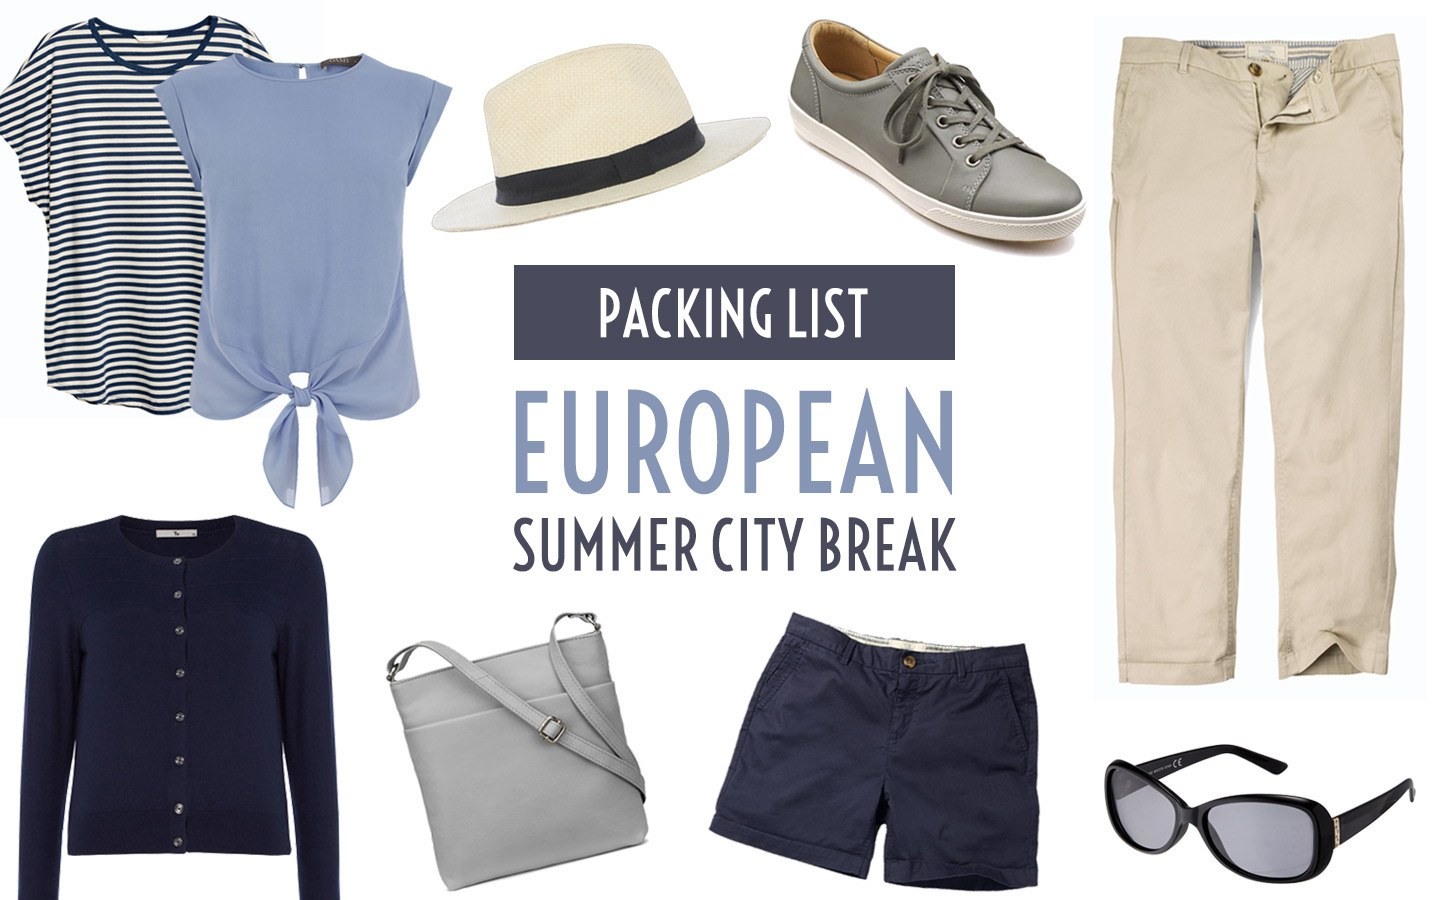 What to pack for a European summer city break